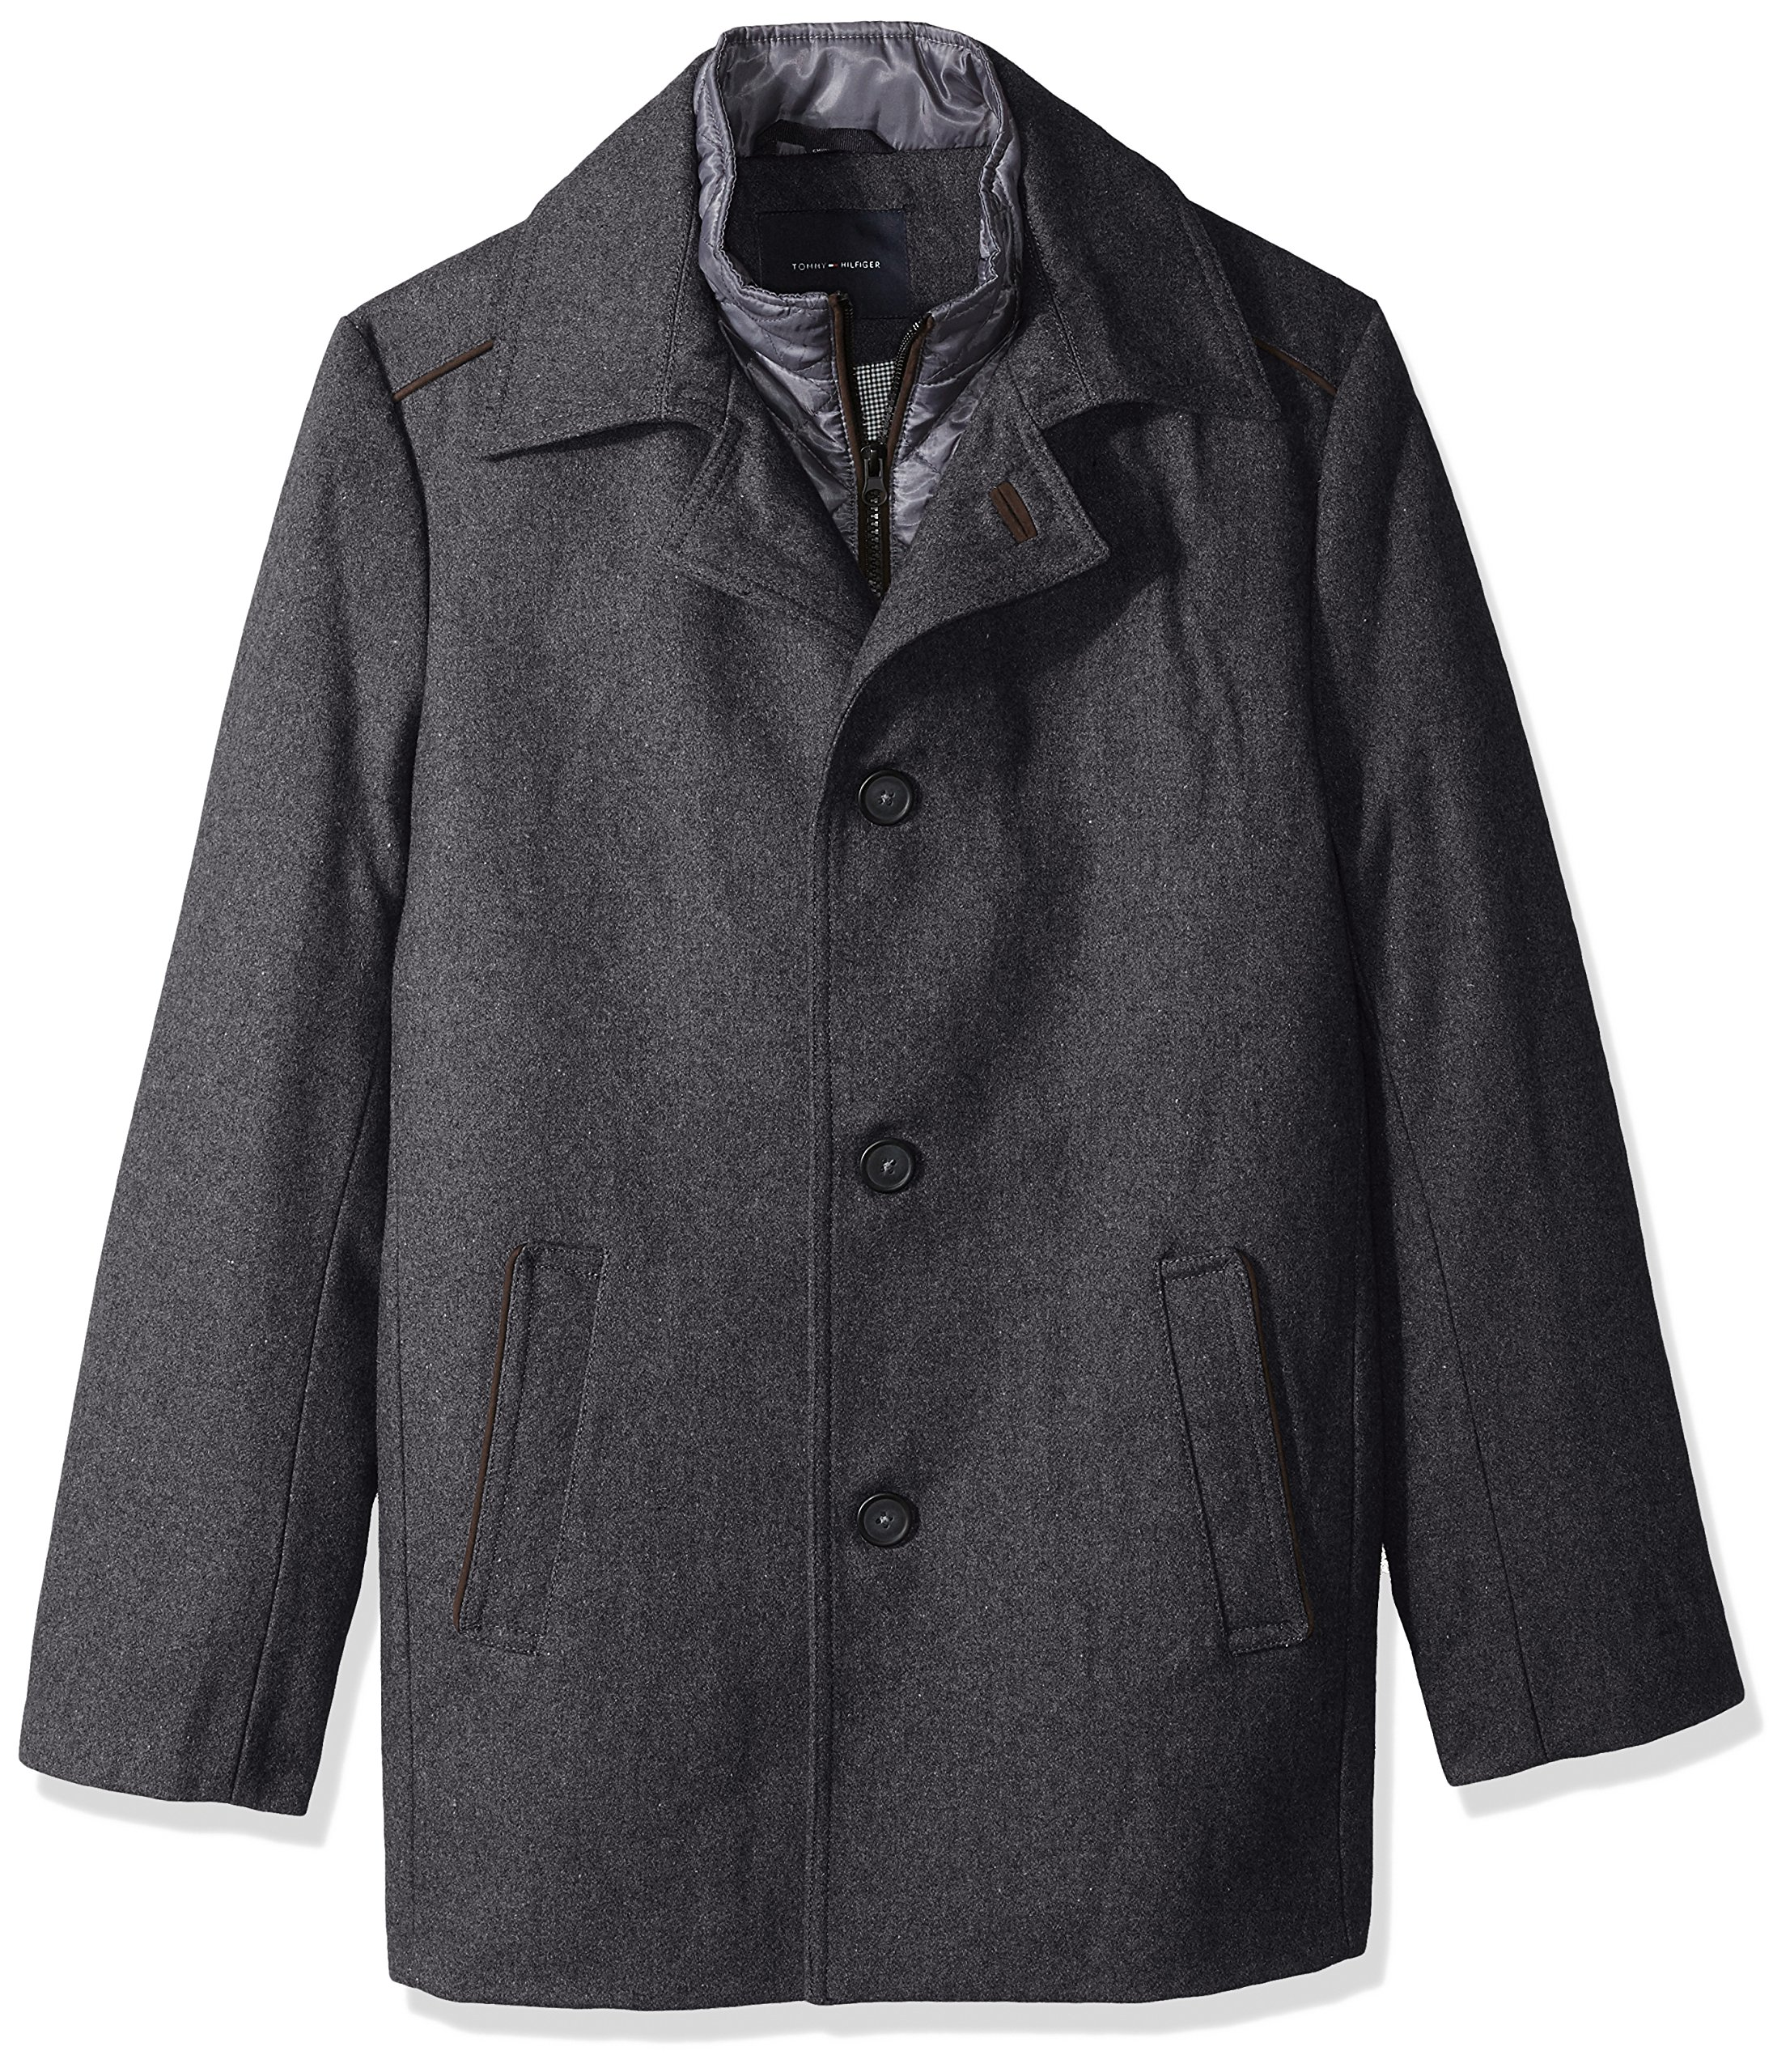 Tommy Hilfiger Men's Briggs 32 inch Top Coat with Quilted Bib, Charcoal, 38S by Tommy Hilfiger